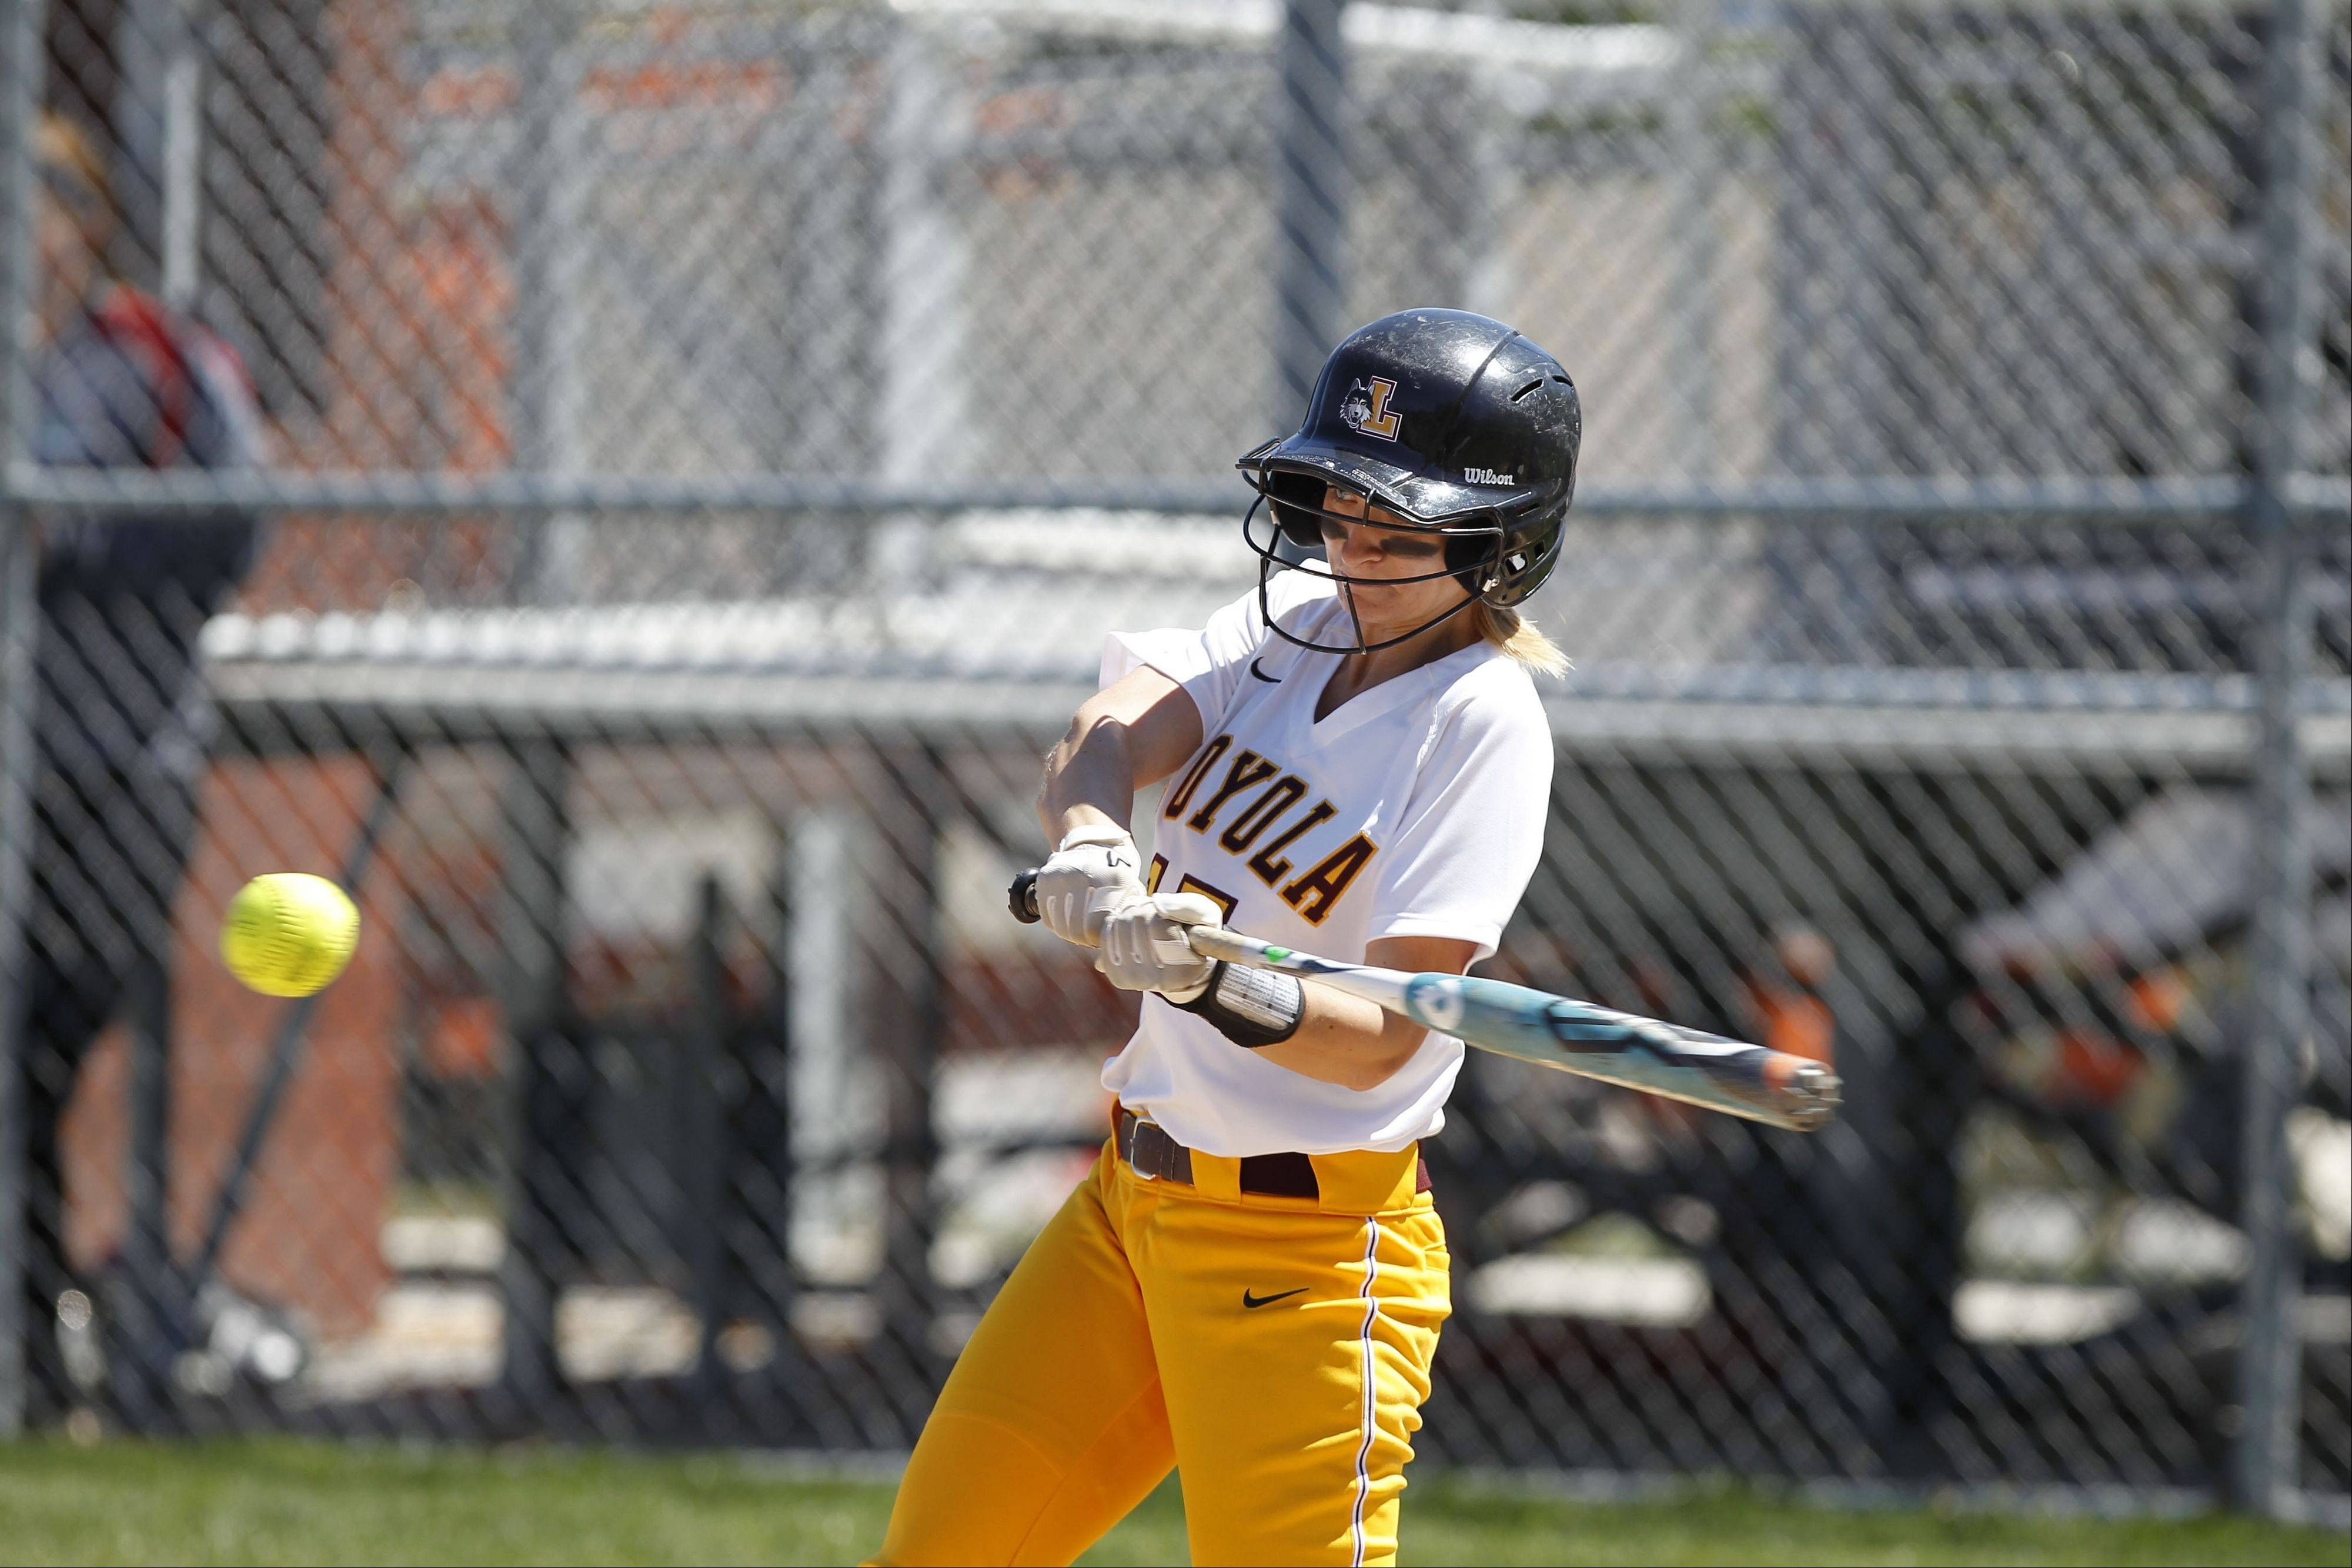 Brooke Andresen, a Downers Grove South grad, has carved her name into Loyola University's softball record books. Throughout her four-year collegiate career, Andresen has never hit lower than .325.